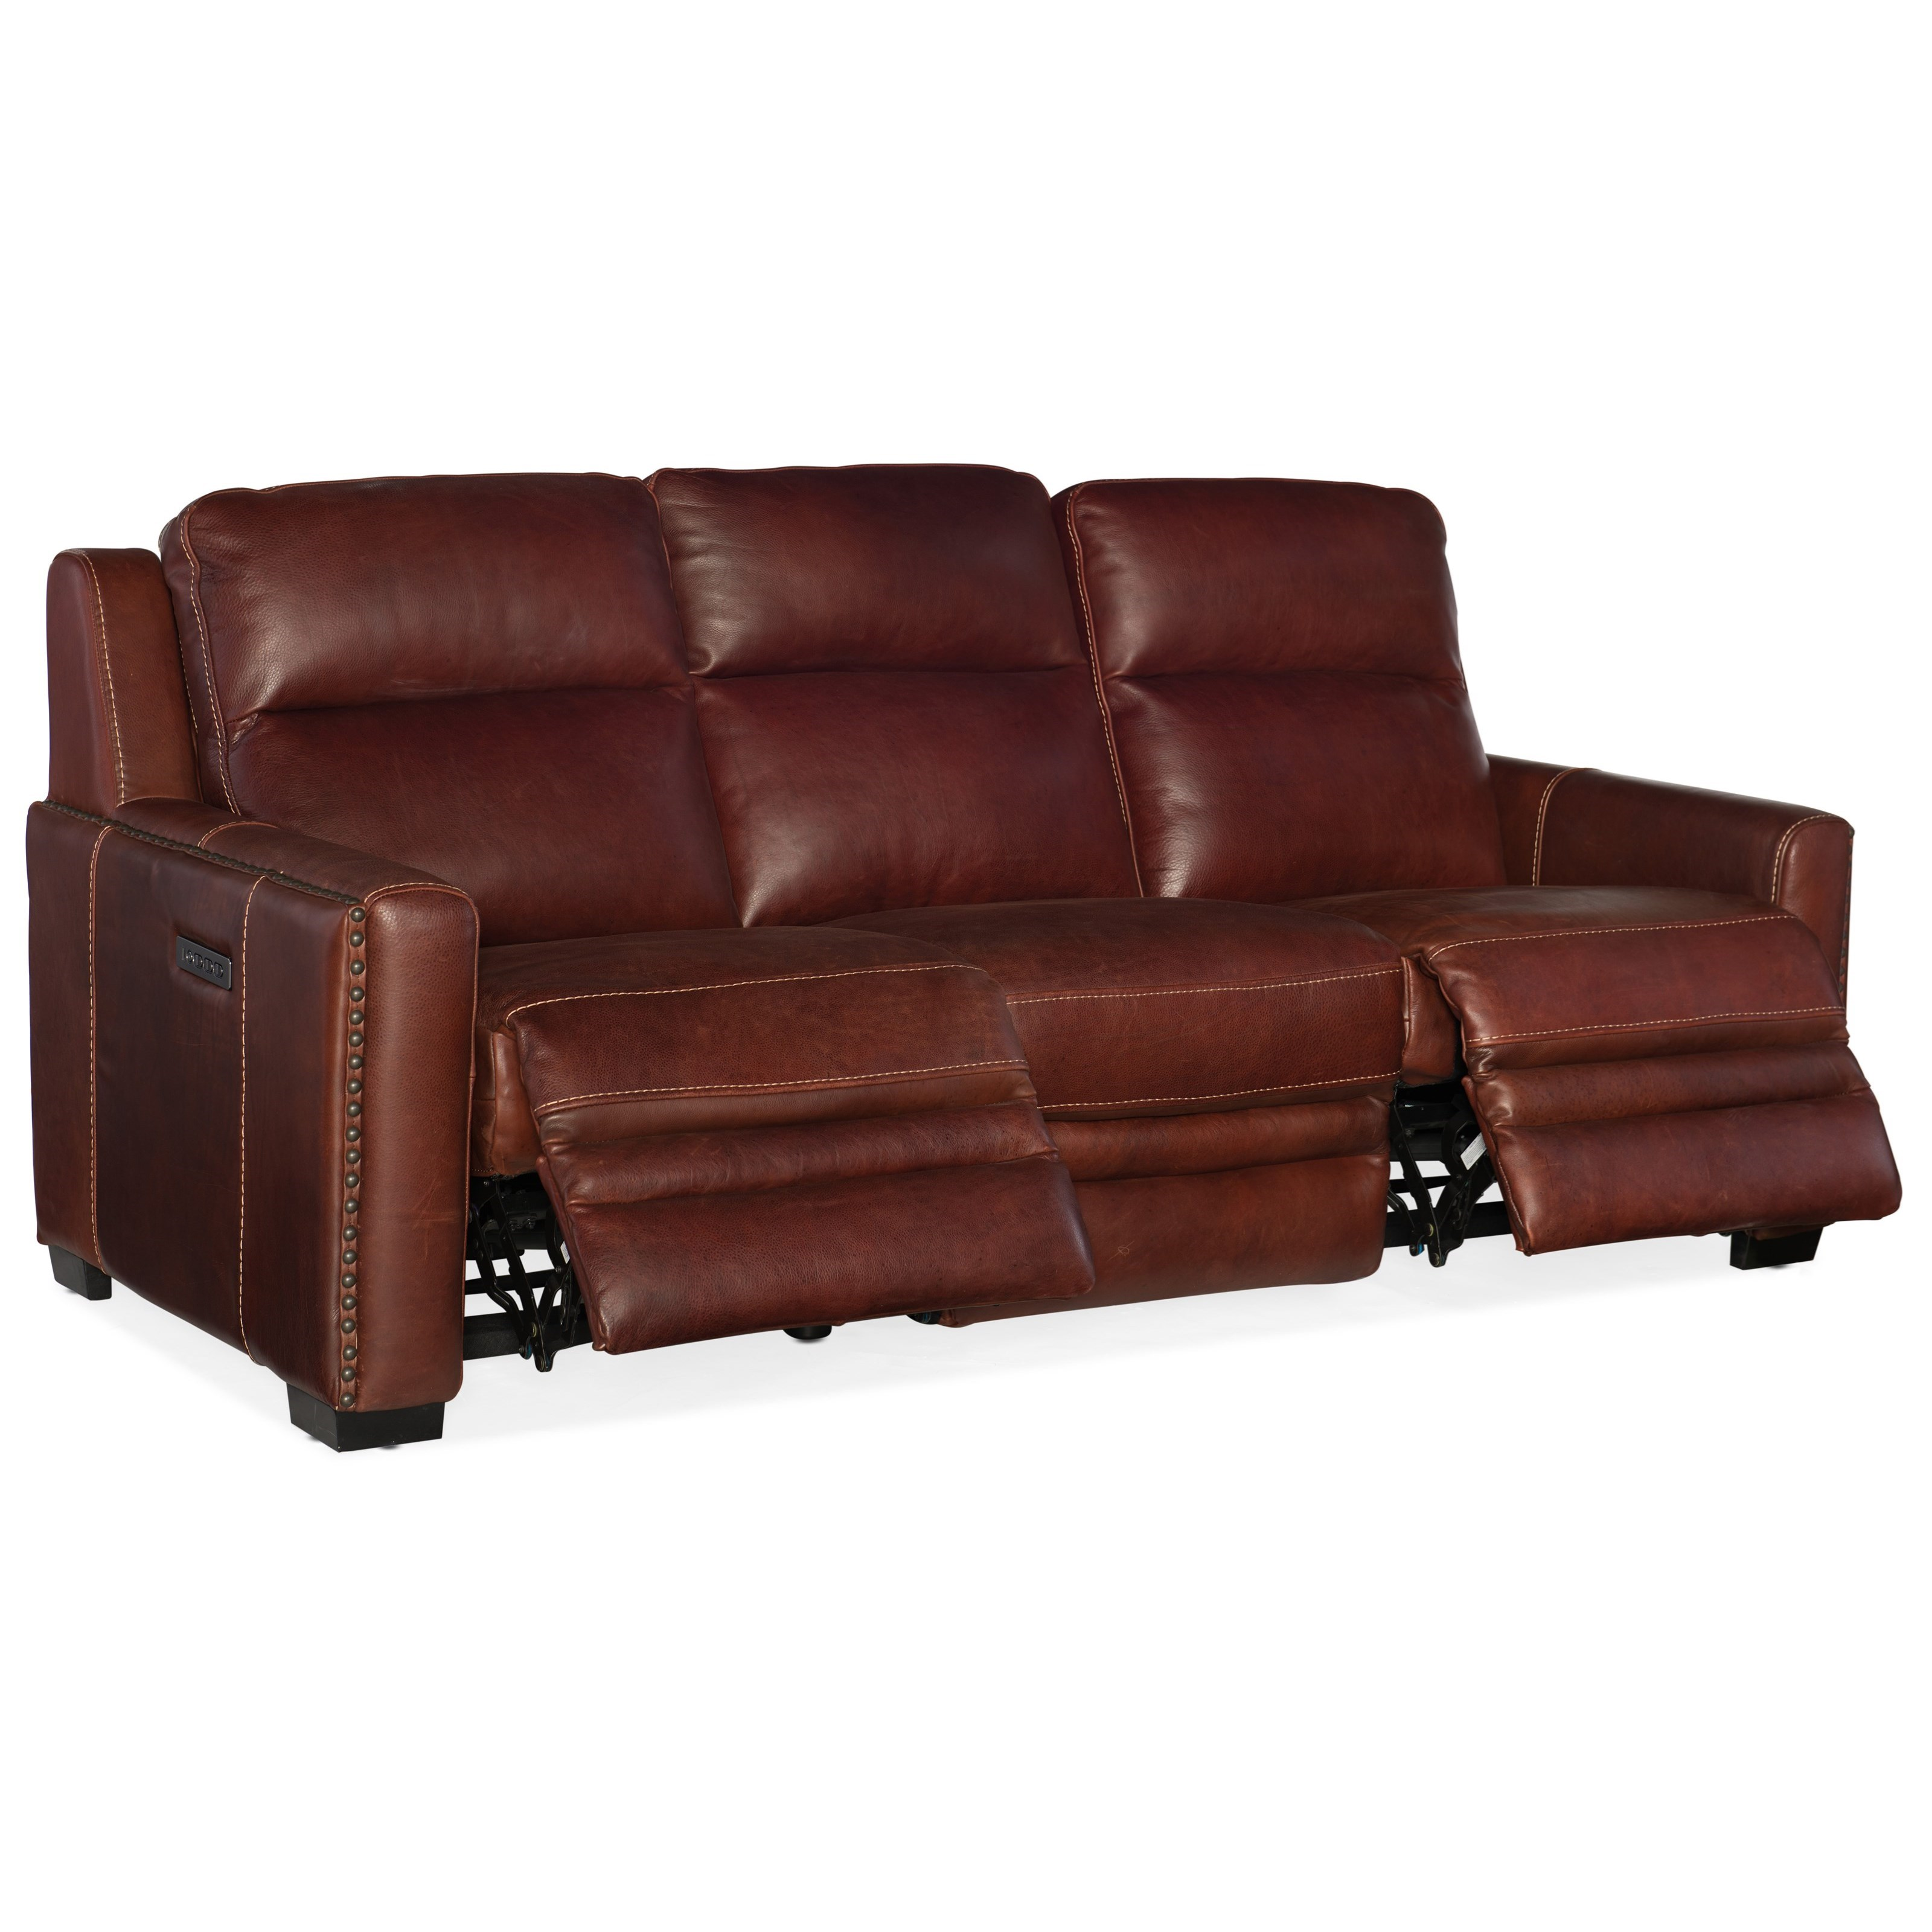 B751 Transitional Reclining Sectional With Storage Console: Hooker Furniture Lincoln SS631-P3-078 Transitional Leather